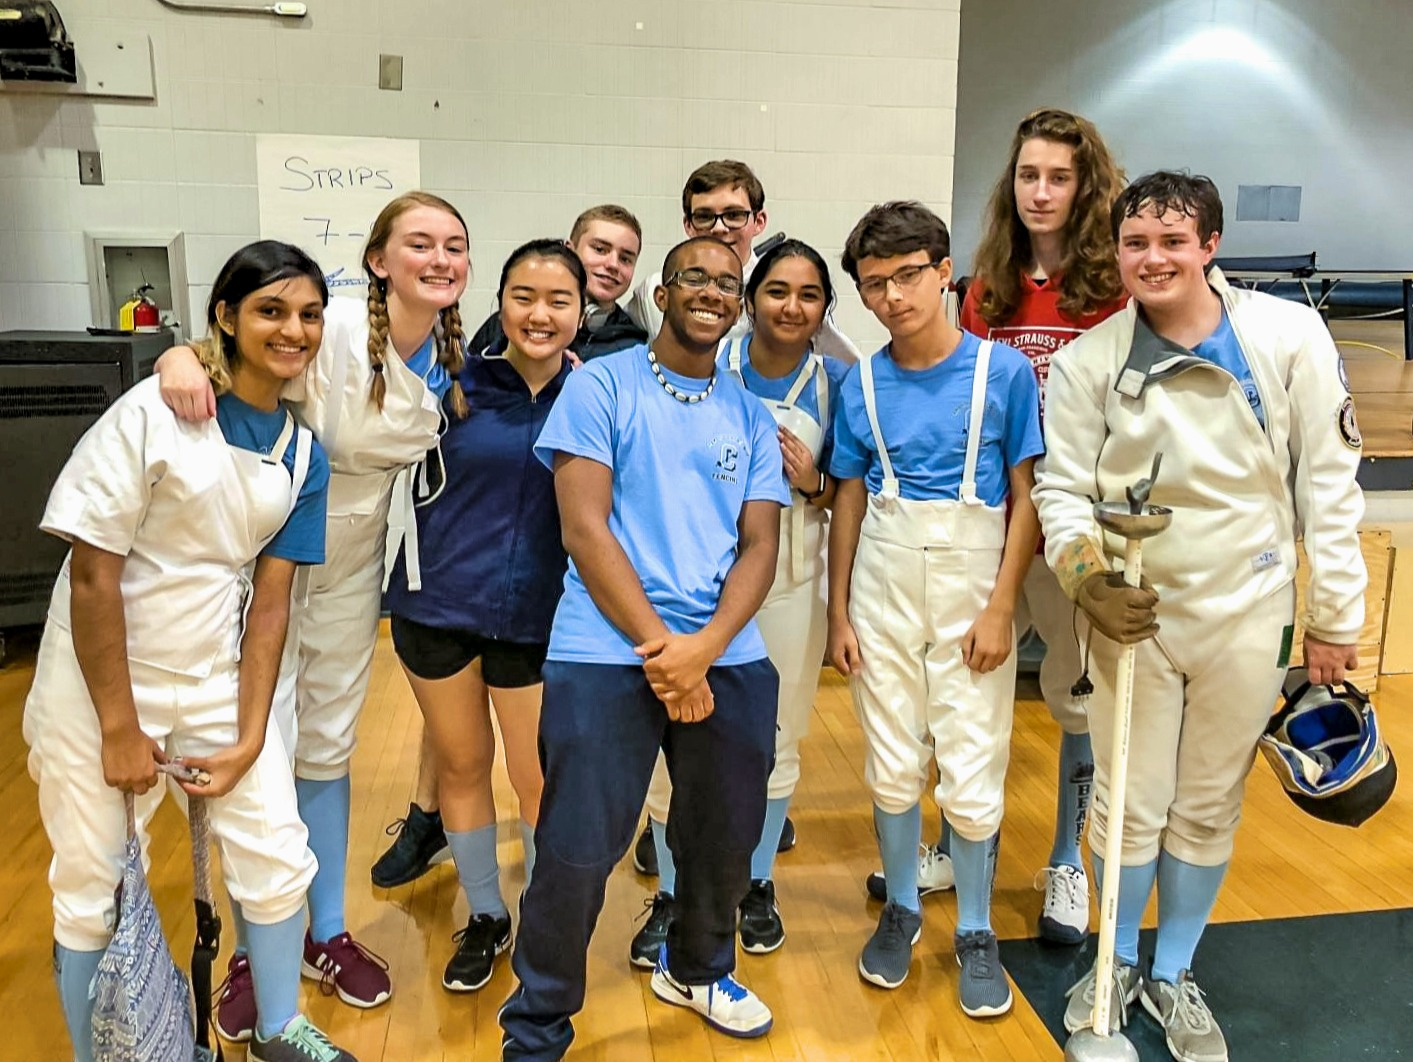 Members of the Cambridge fencing team at the Dunwoody High School tournament.